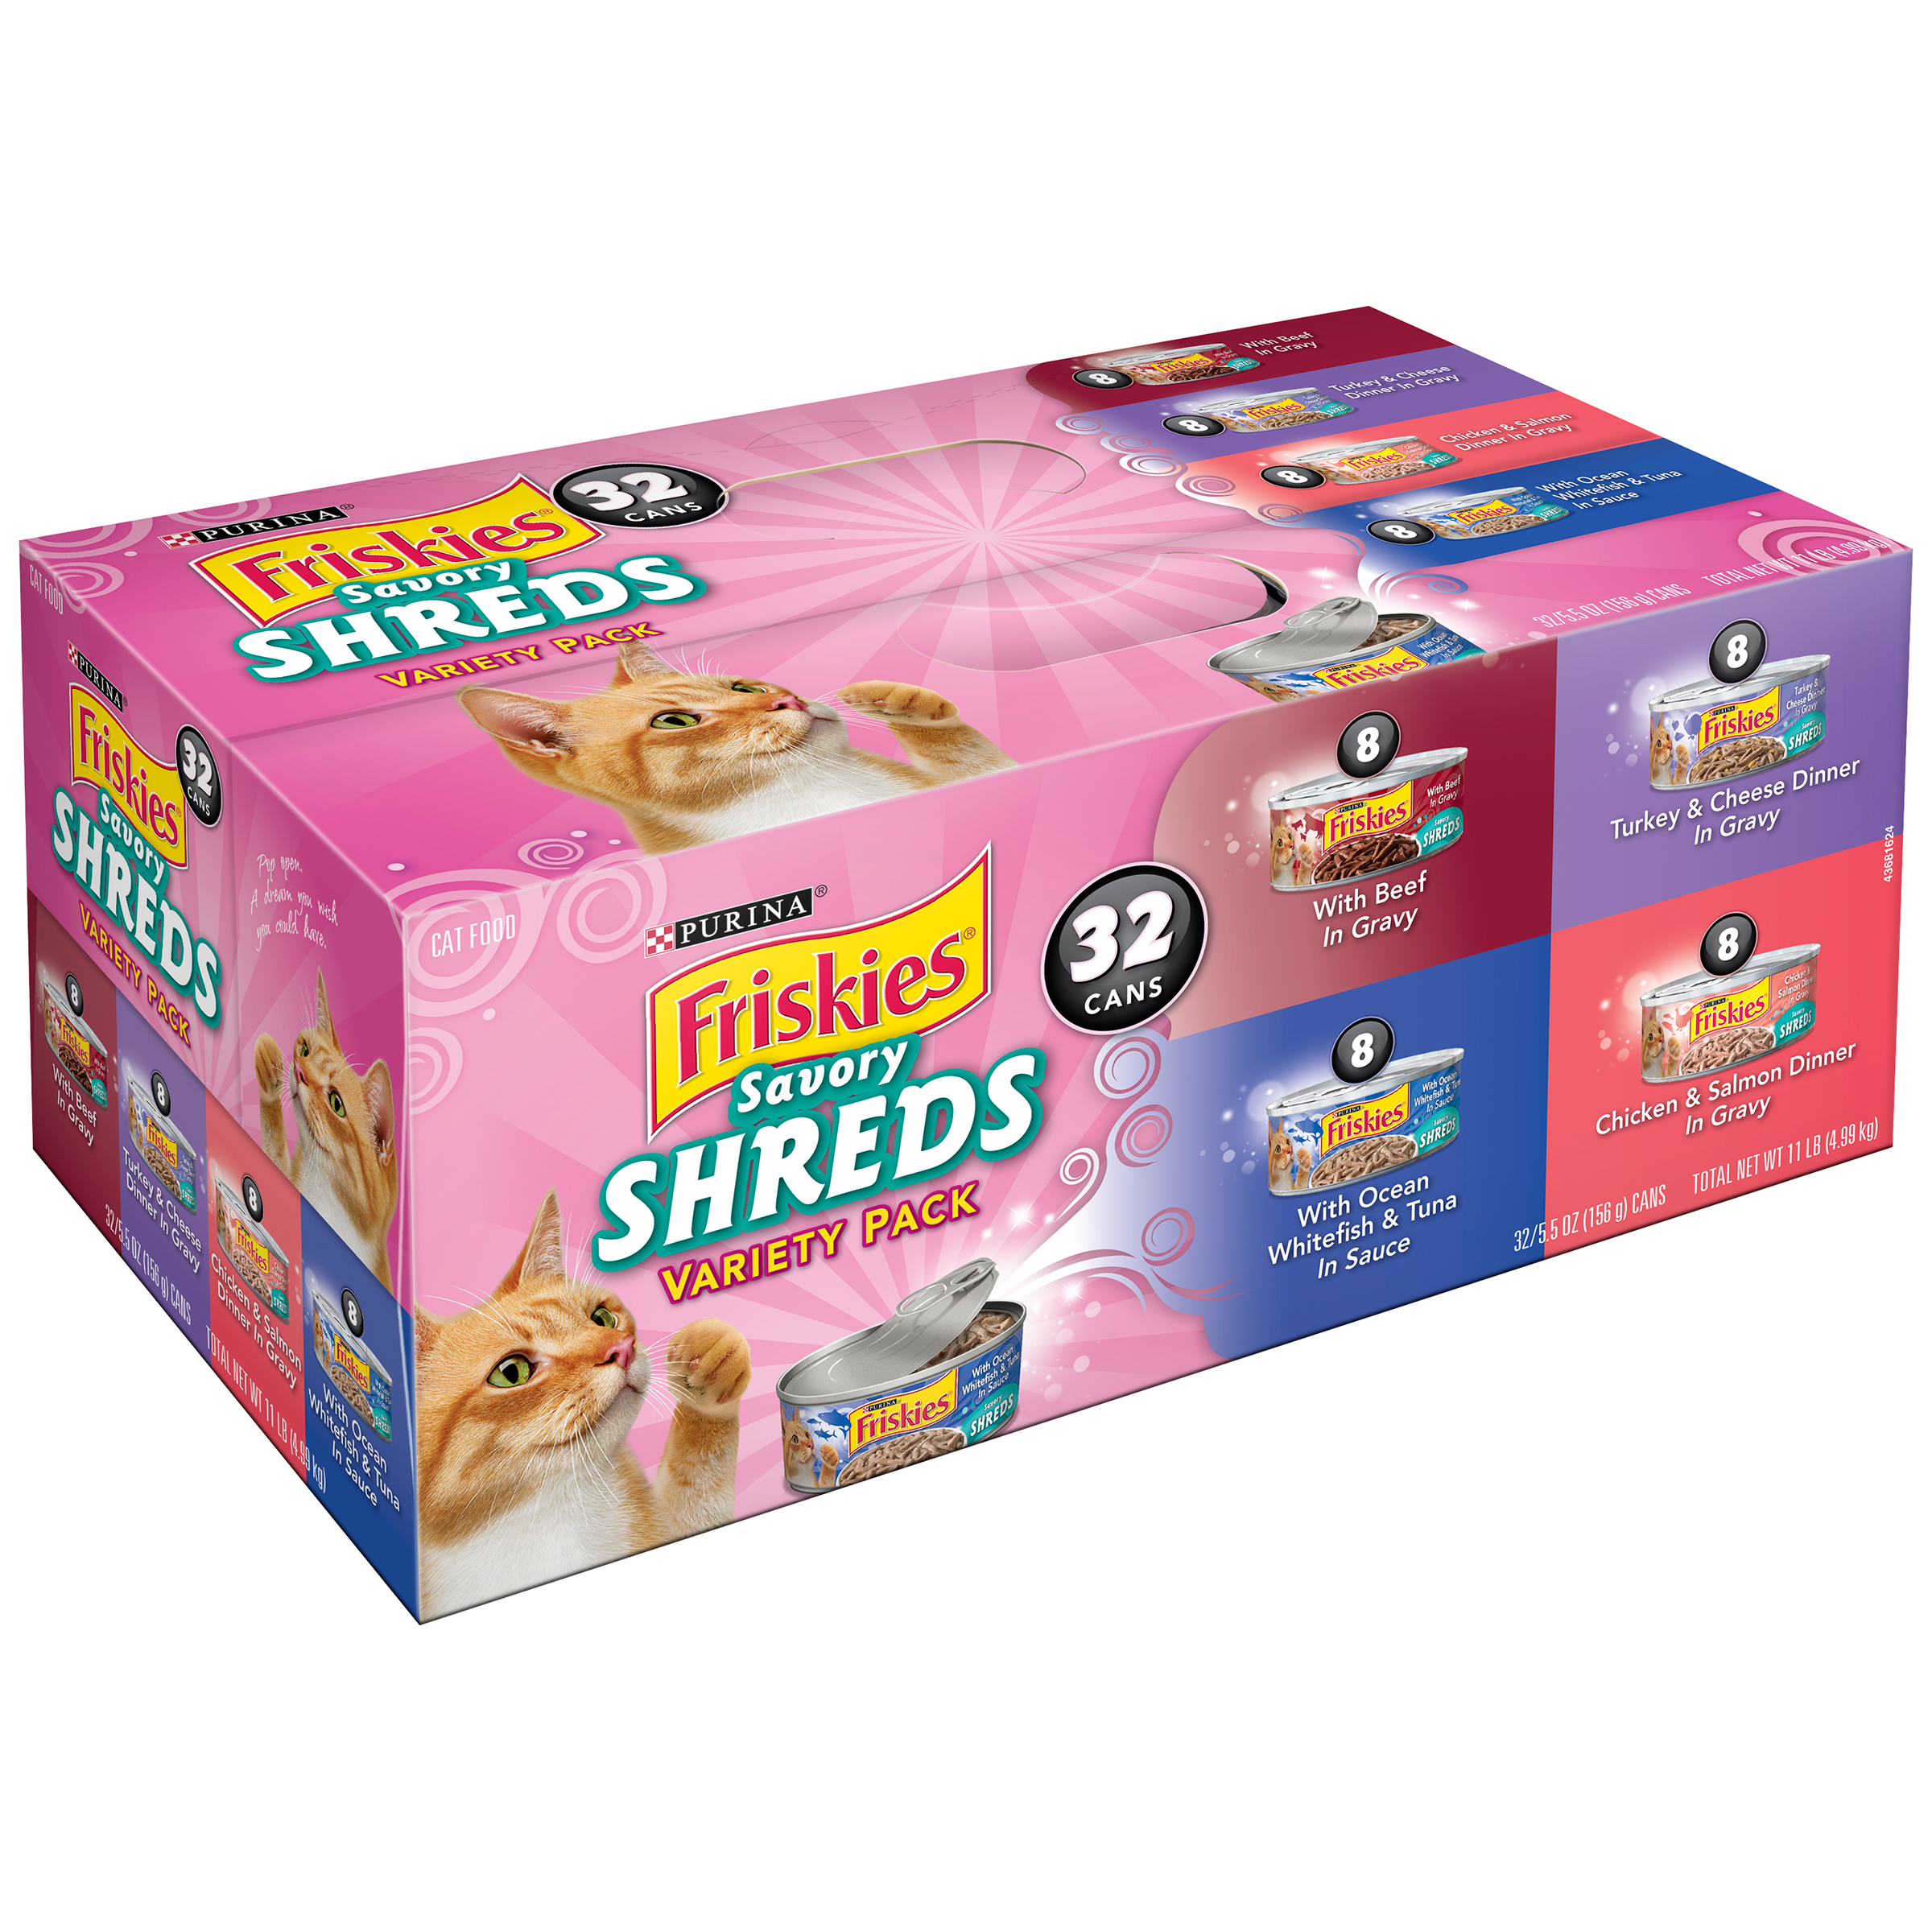 Purina Friskies Savory Shreds Cat Food Variety Pack 32-5.5 oz. Cans